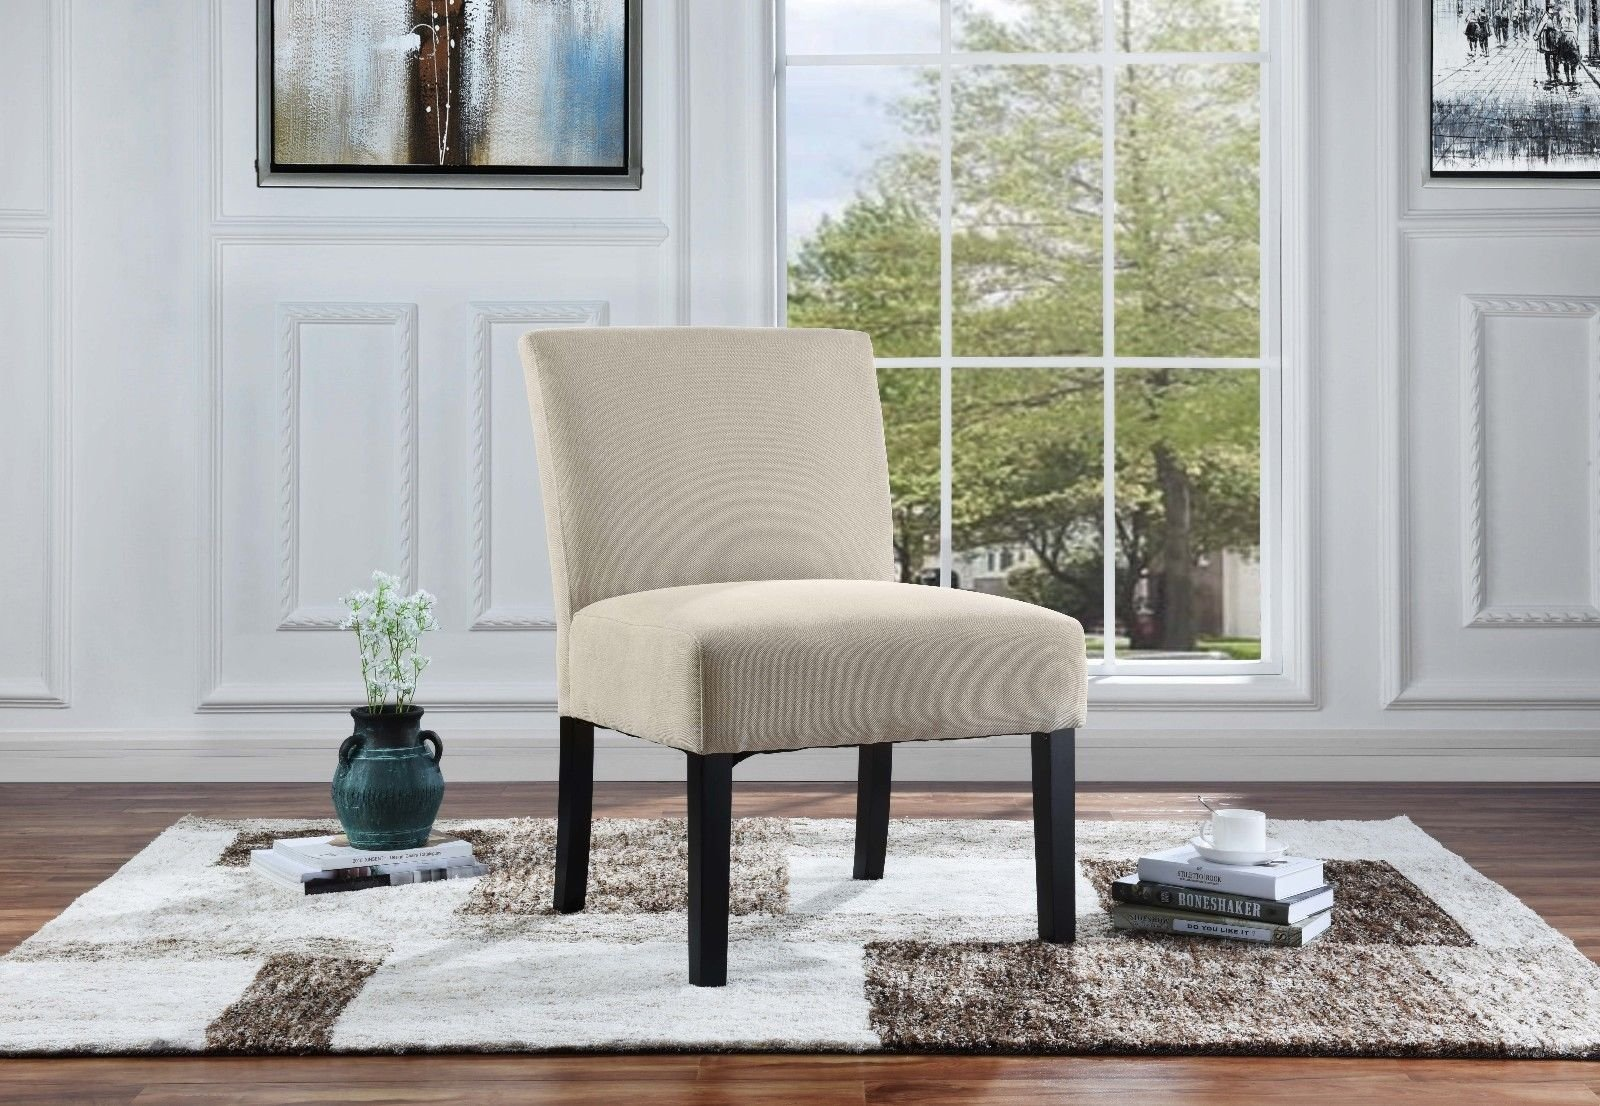 Details about Modern Contemporary Sleek Linen Fabric Living Room Accent  Chair, Dining Chair